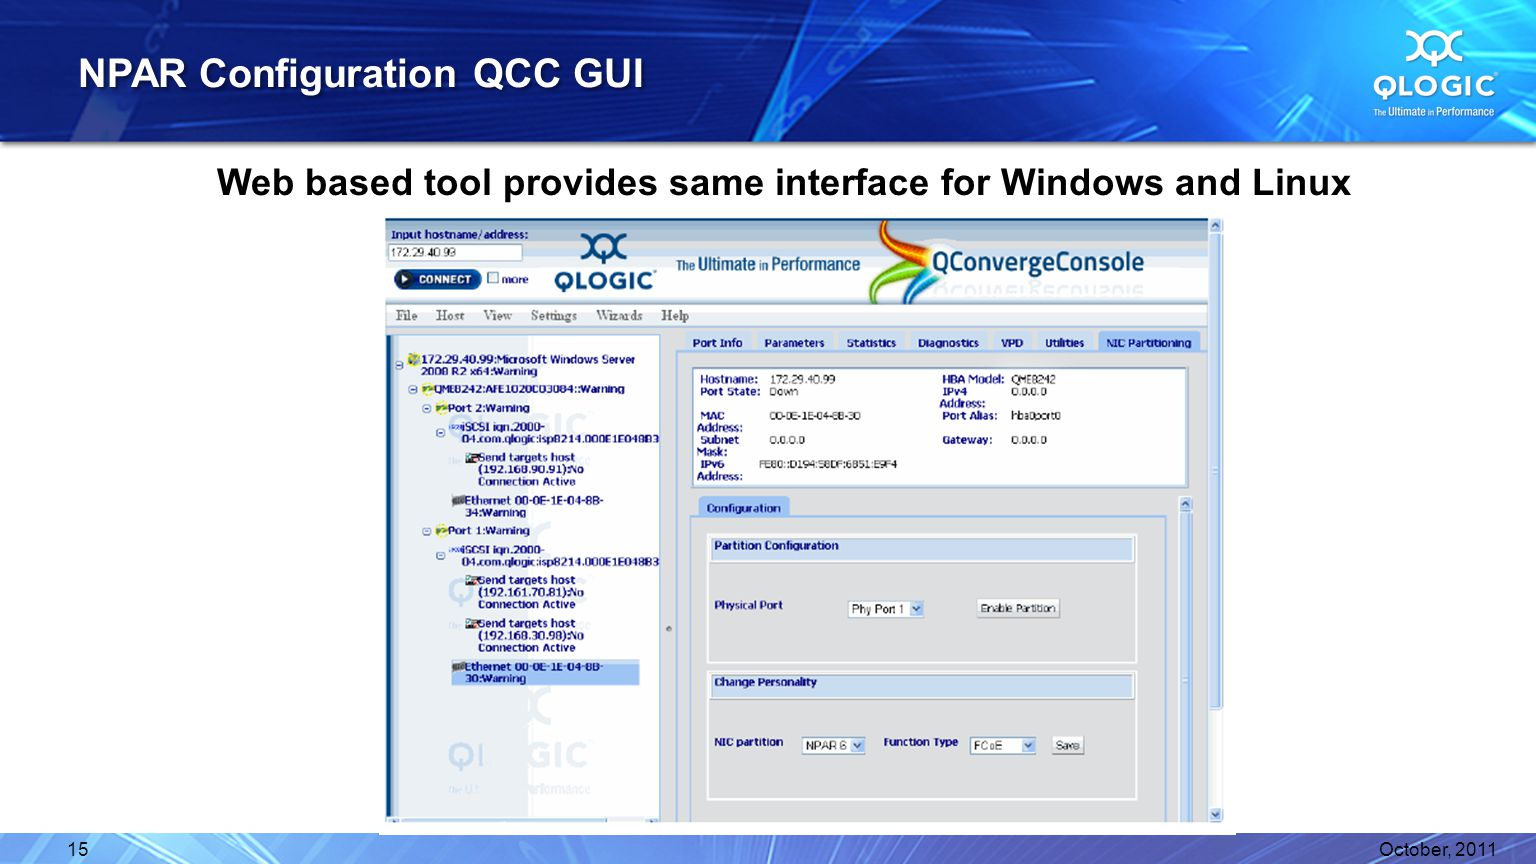 NPAR Configuration QCC GUI Web based tool provides same interface for Windows and Linux October, 201115